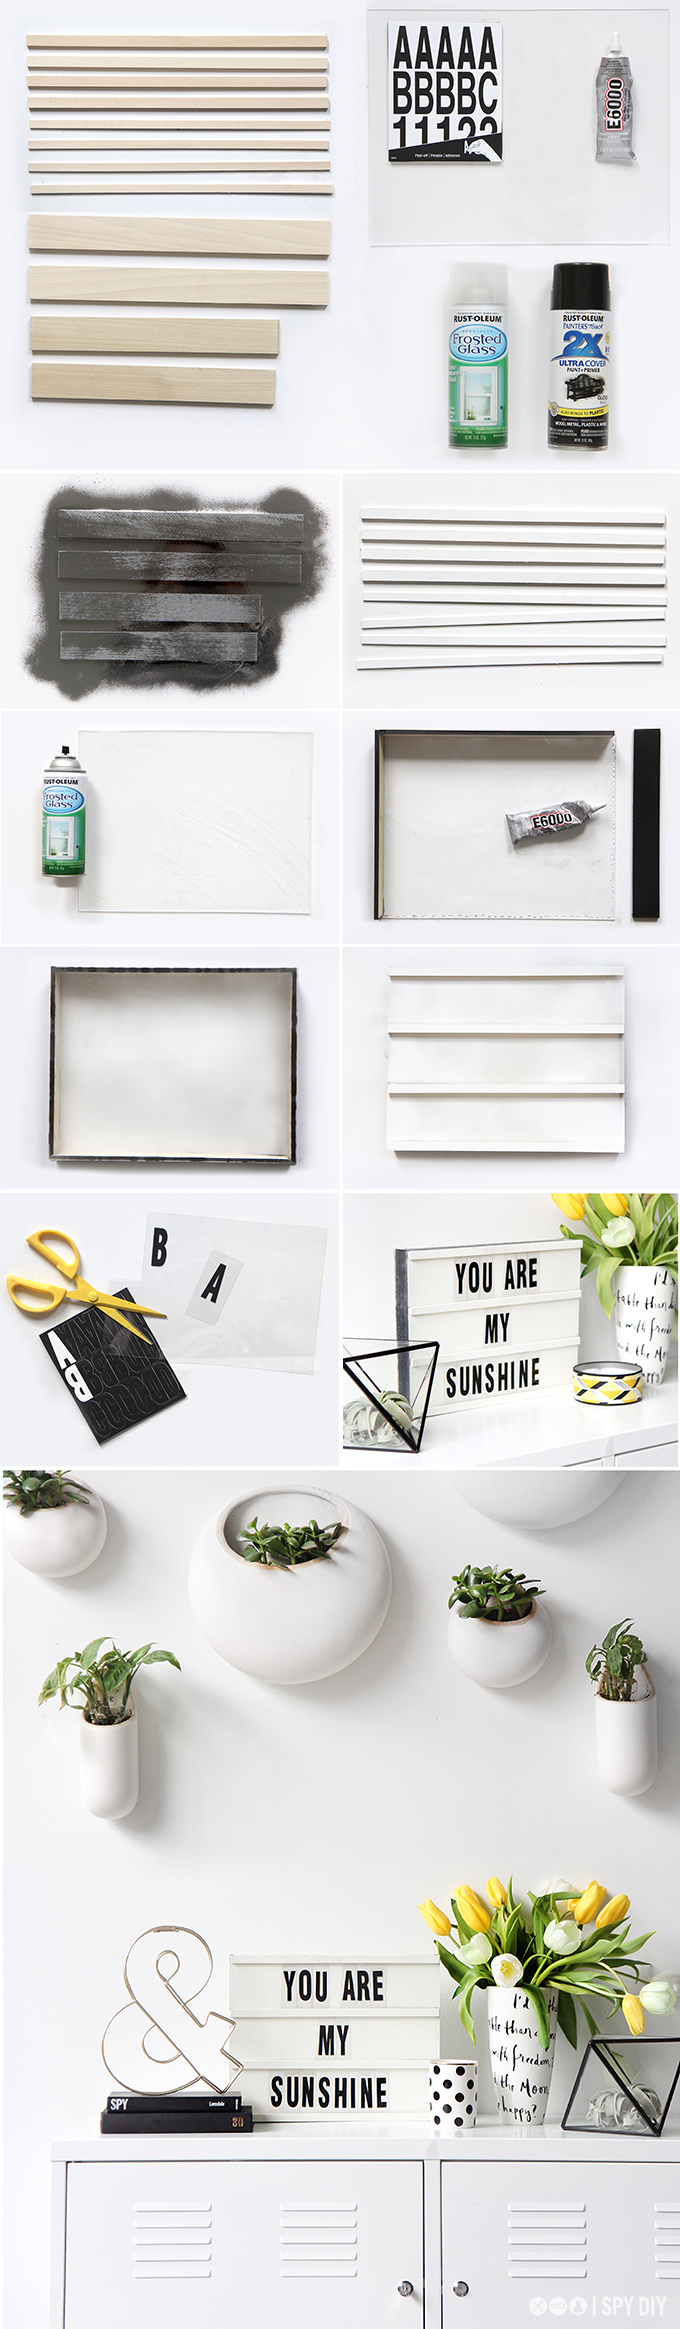 ispydiy_lightbox_steps